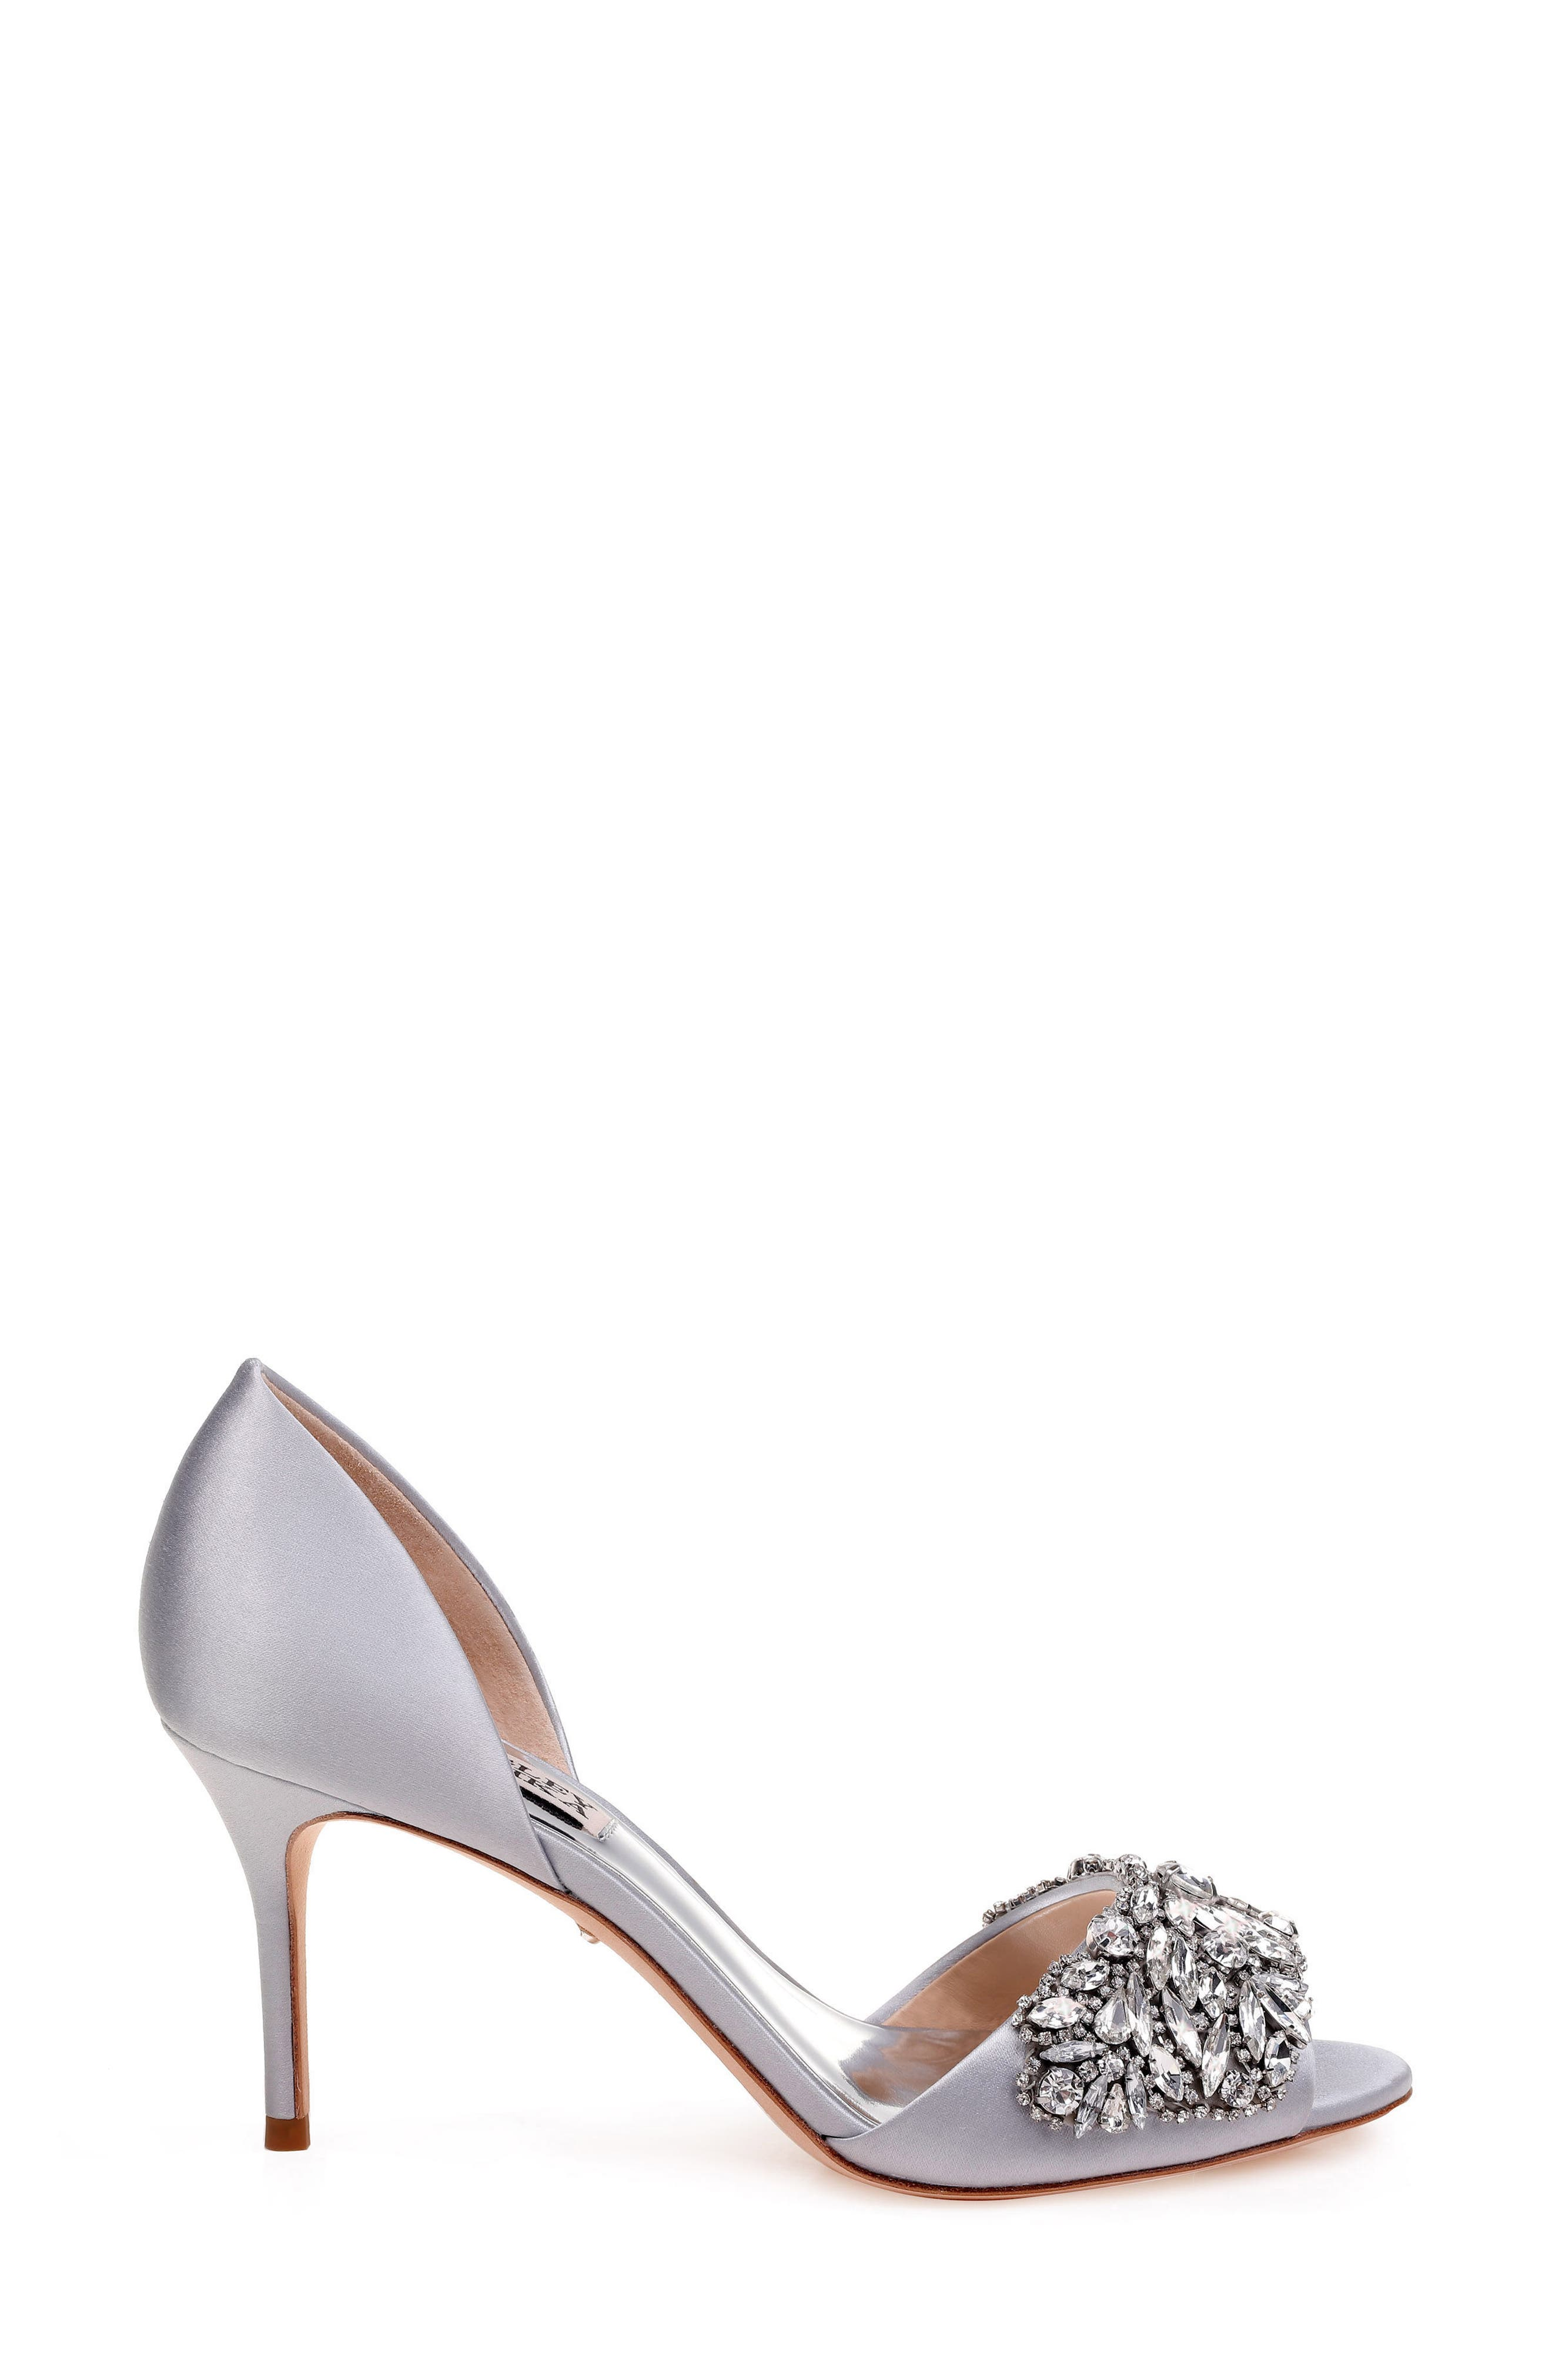 Hansen Crystal Embellished Sandal,                             Alternate thumbnail 3, color,                             SILVER SATIN